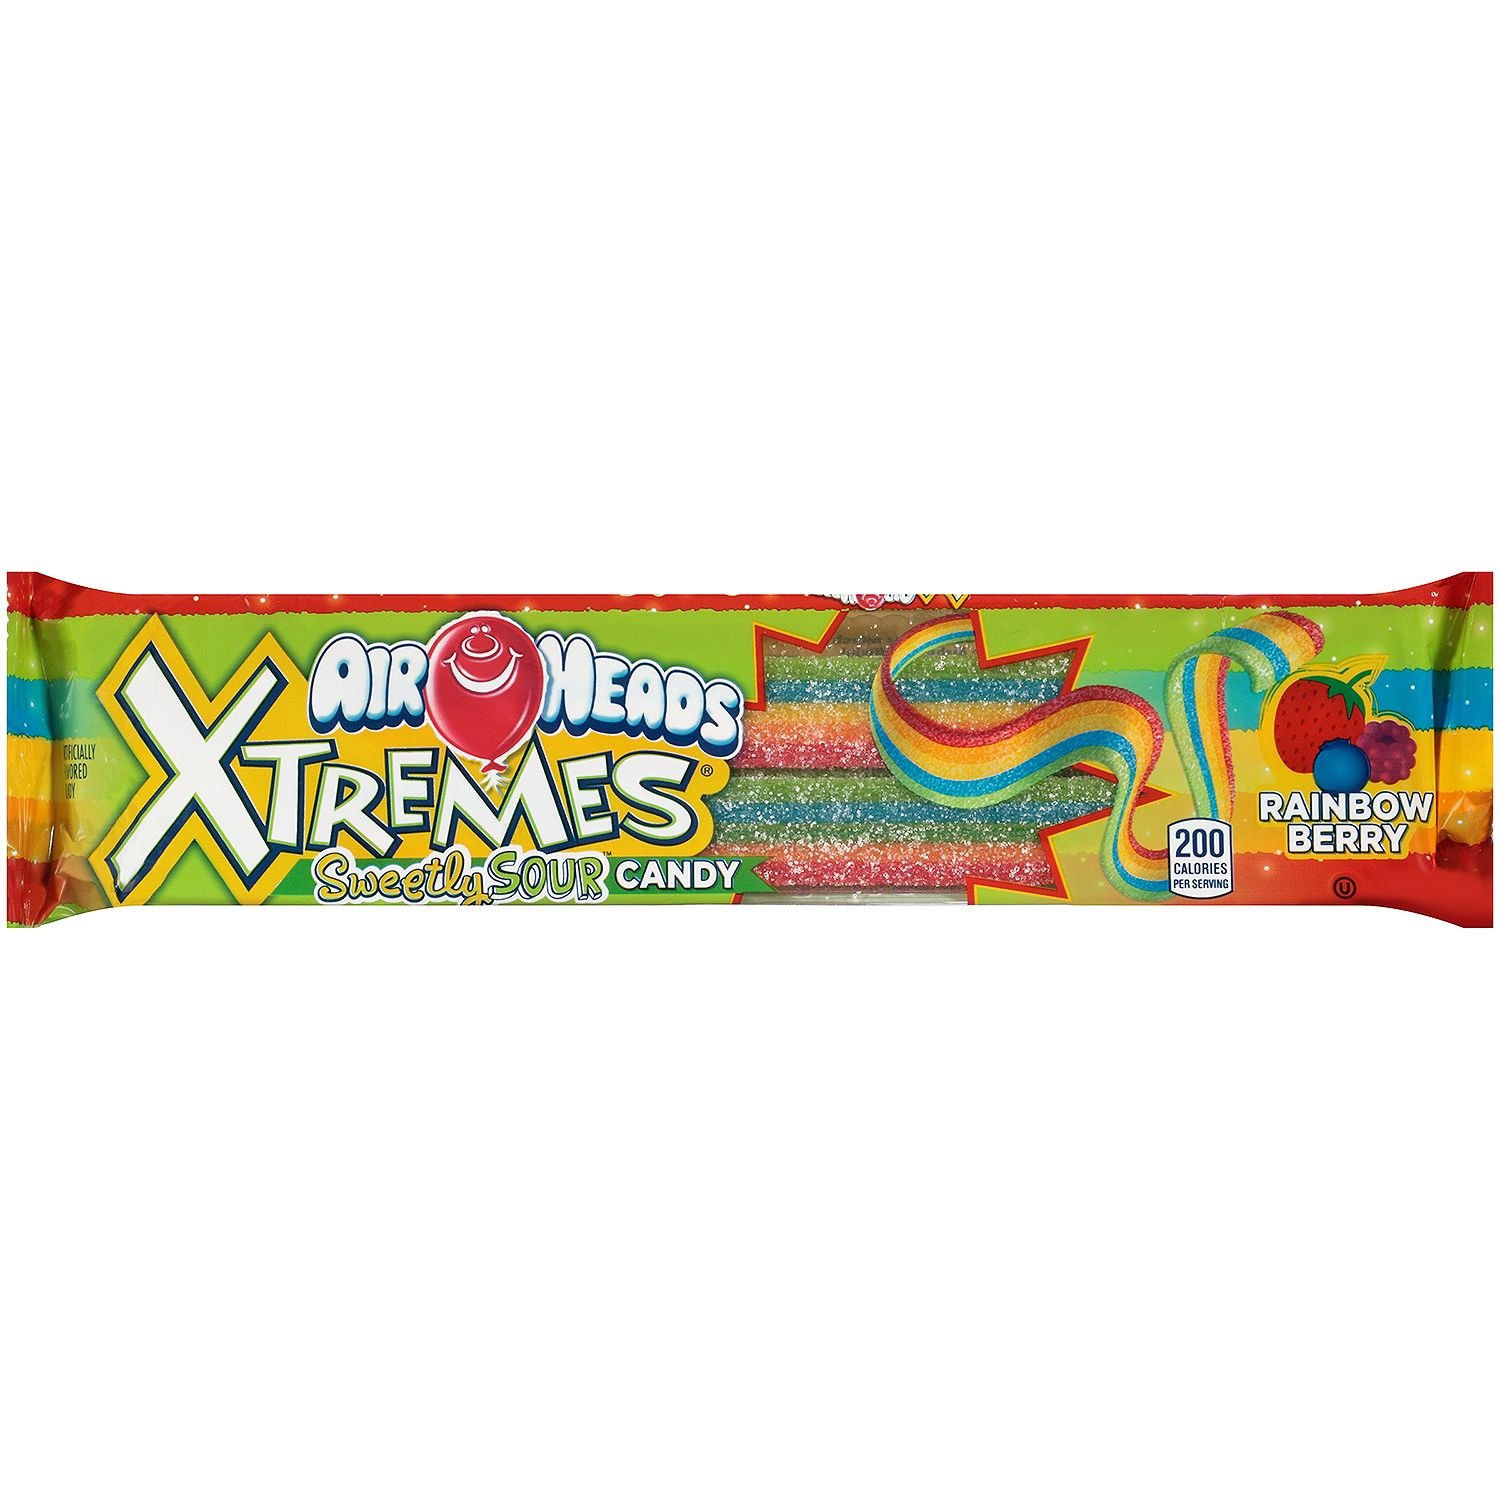 Airheads Xtremes Sour Belts (2 oz., 18 ct.) - Flavor of your choice